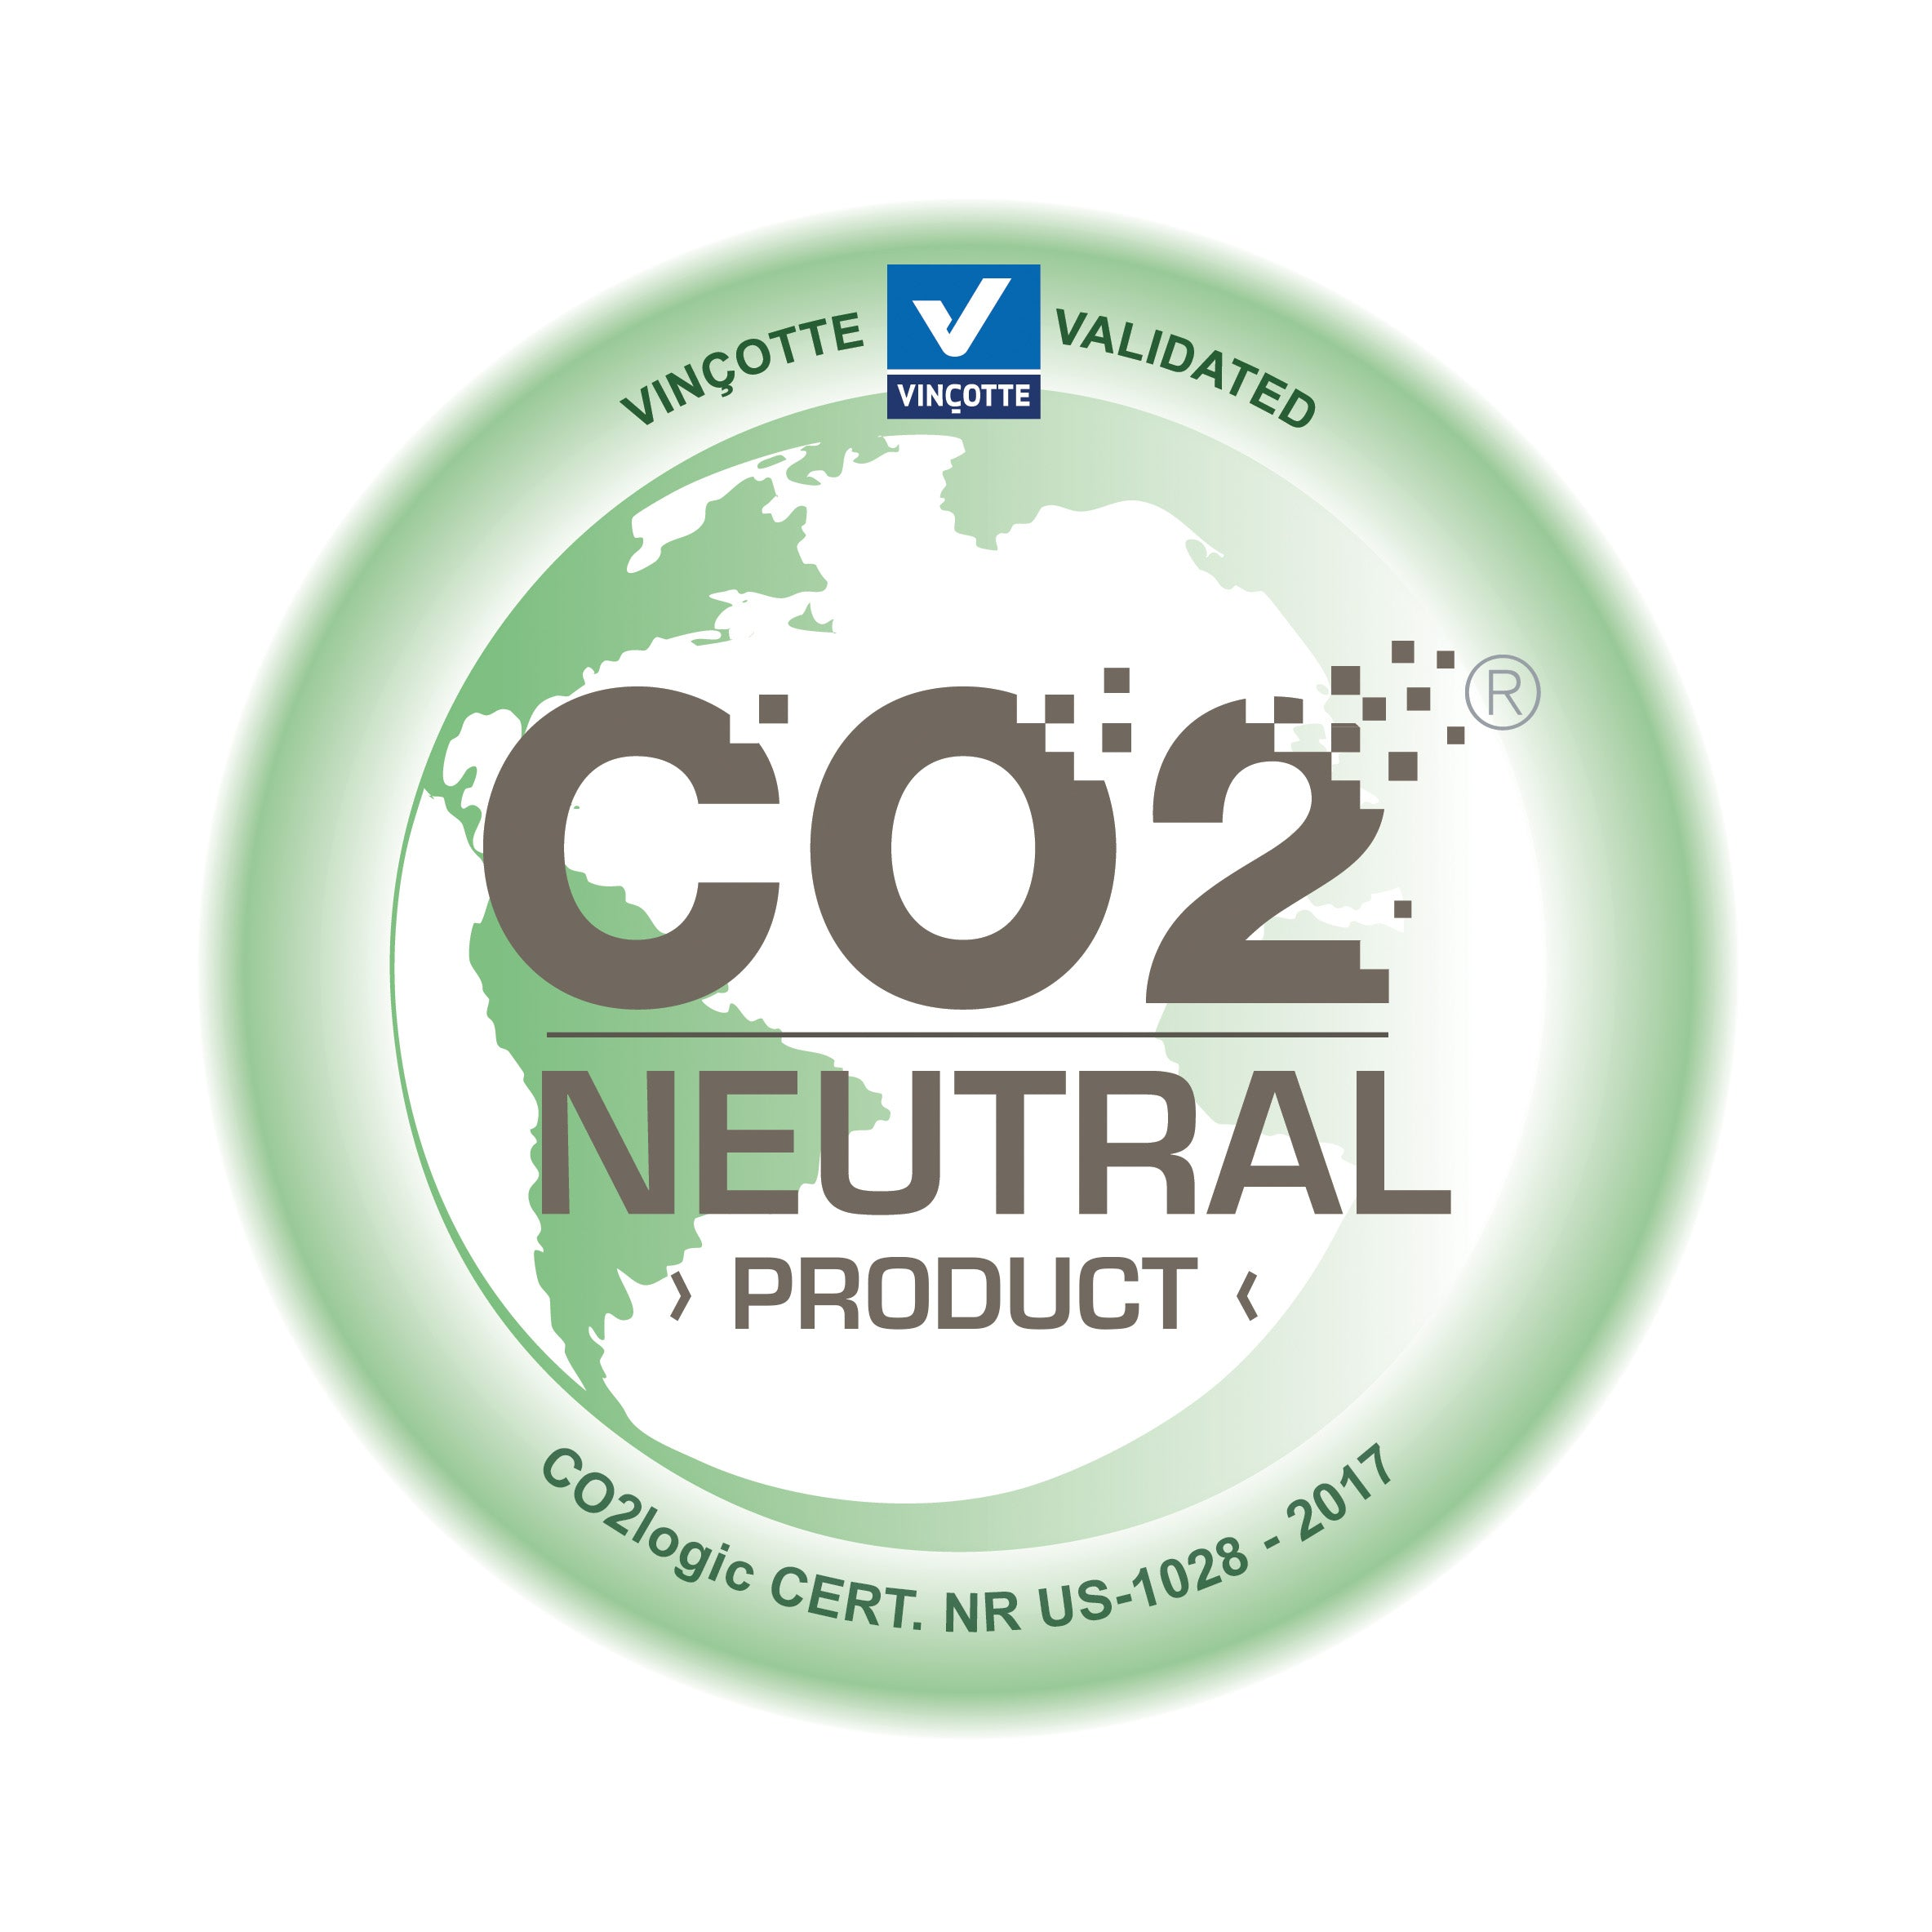 CO2-Neutral label prepare your business for the future become carbon neutral today